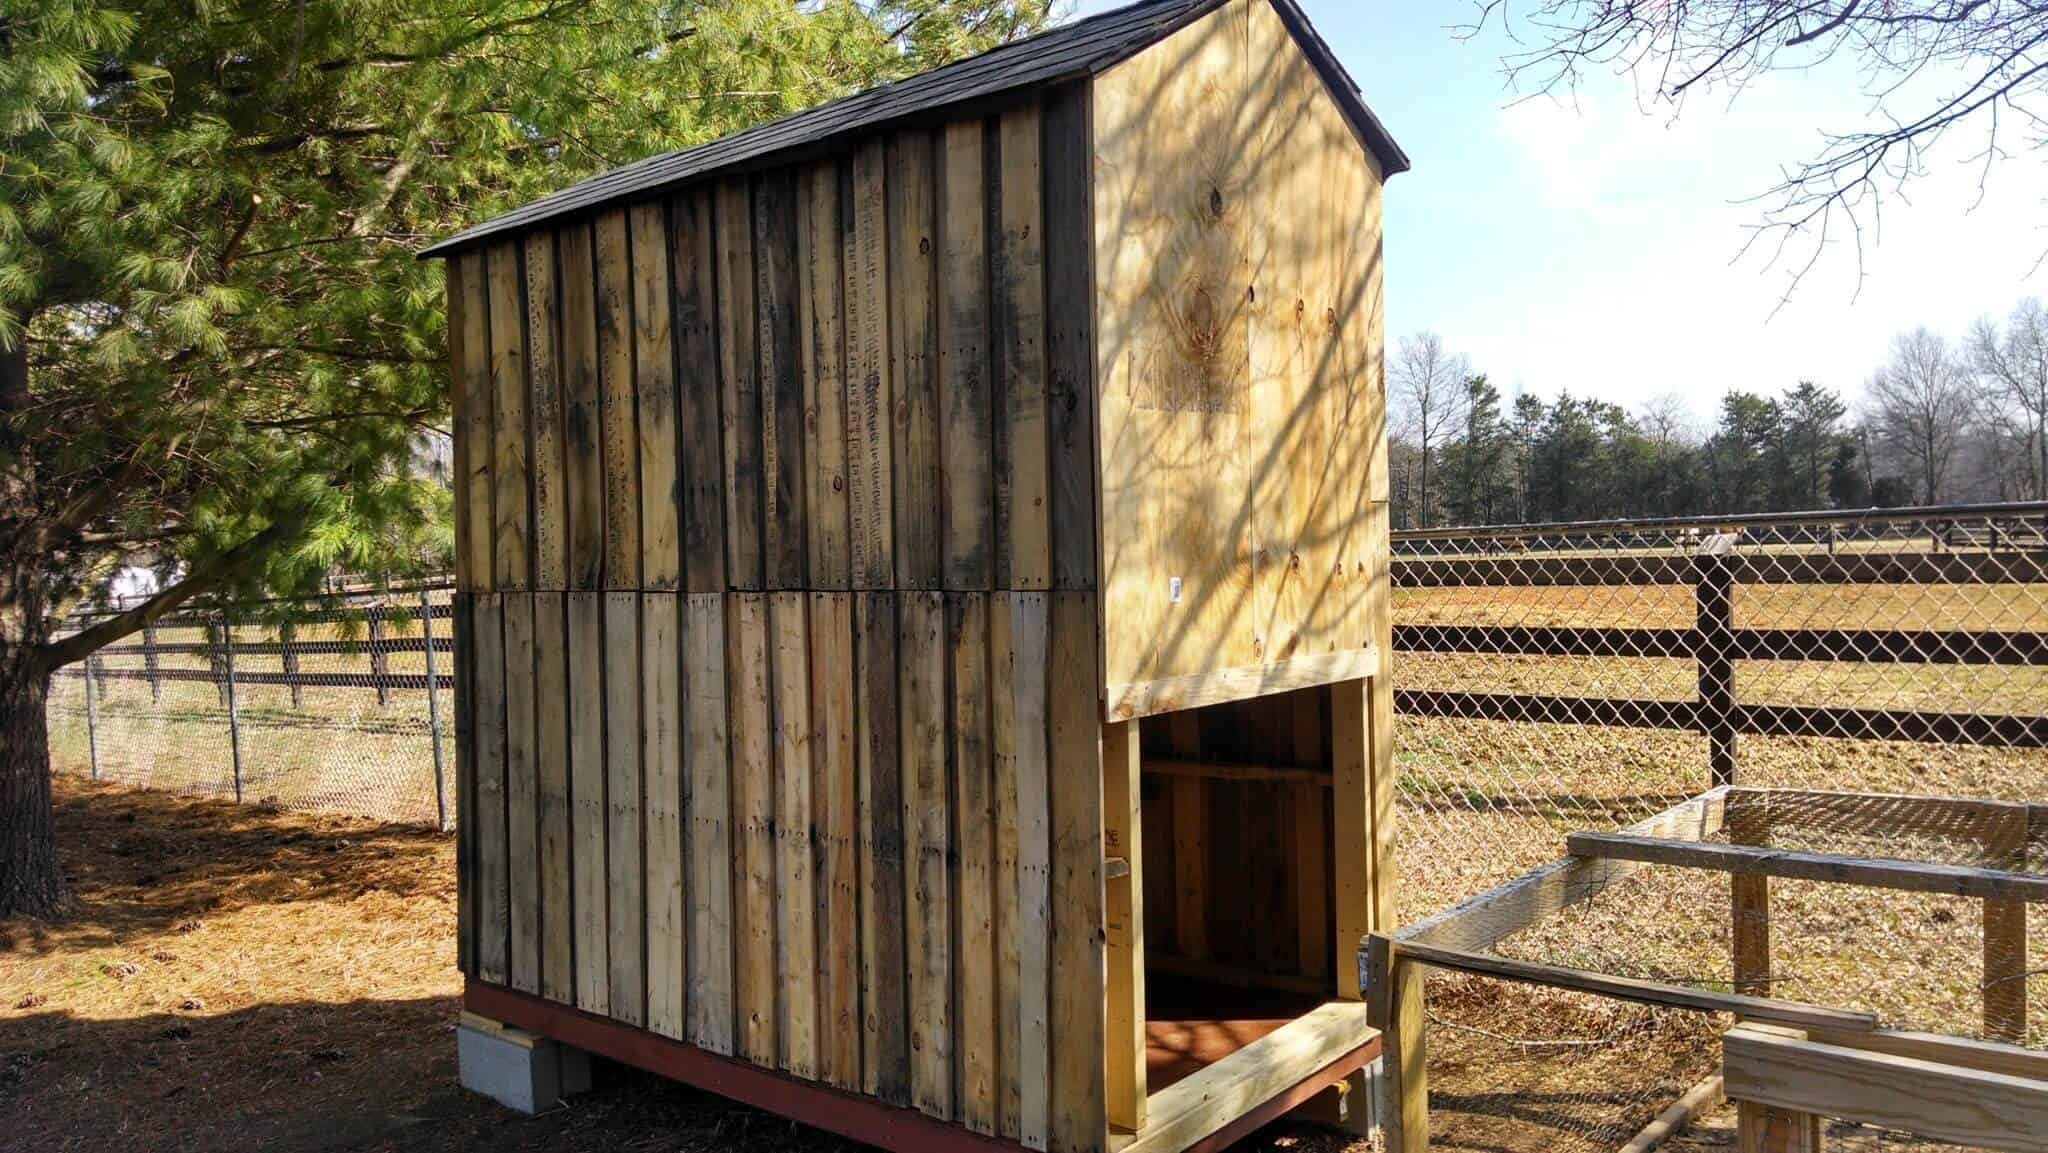 Planning to House Your Chickens: The Ultimate Guide